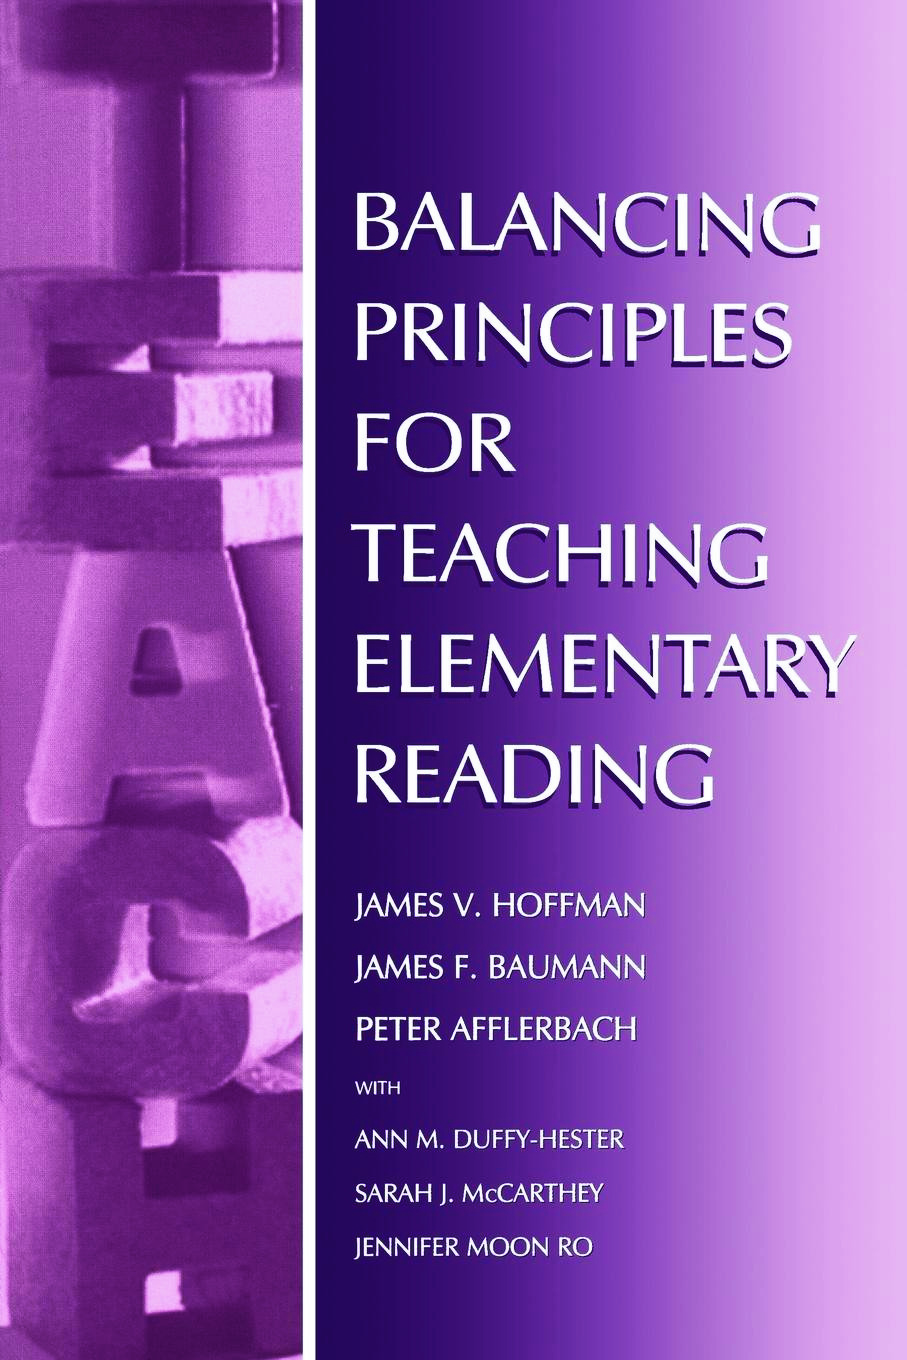 Balancing Principles for Teaching Elementary Reading (Paperback) book cover